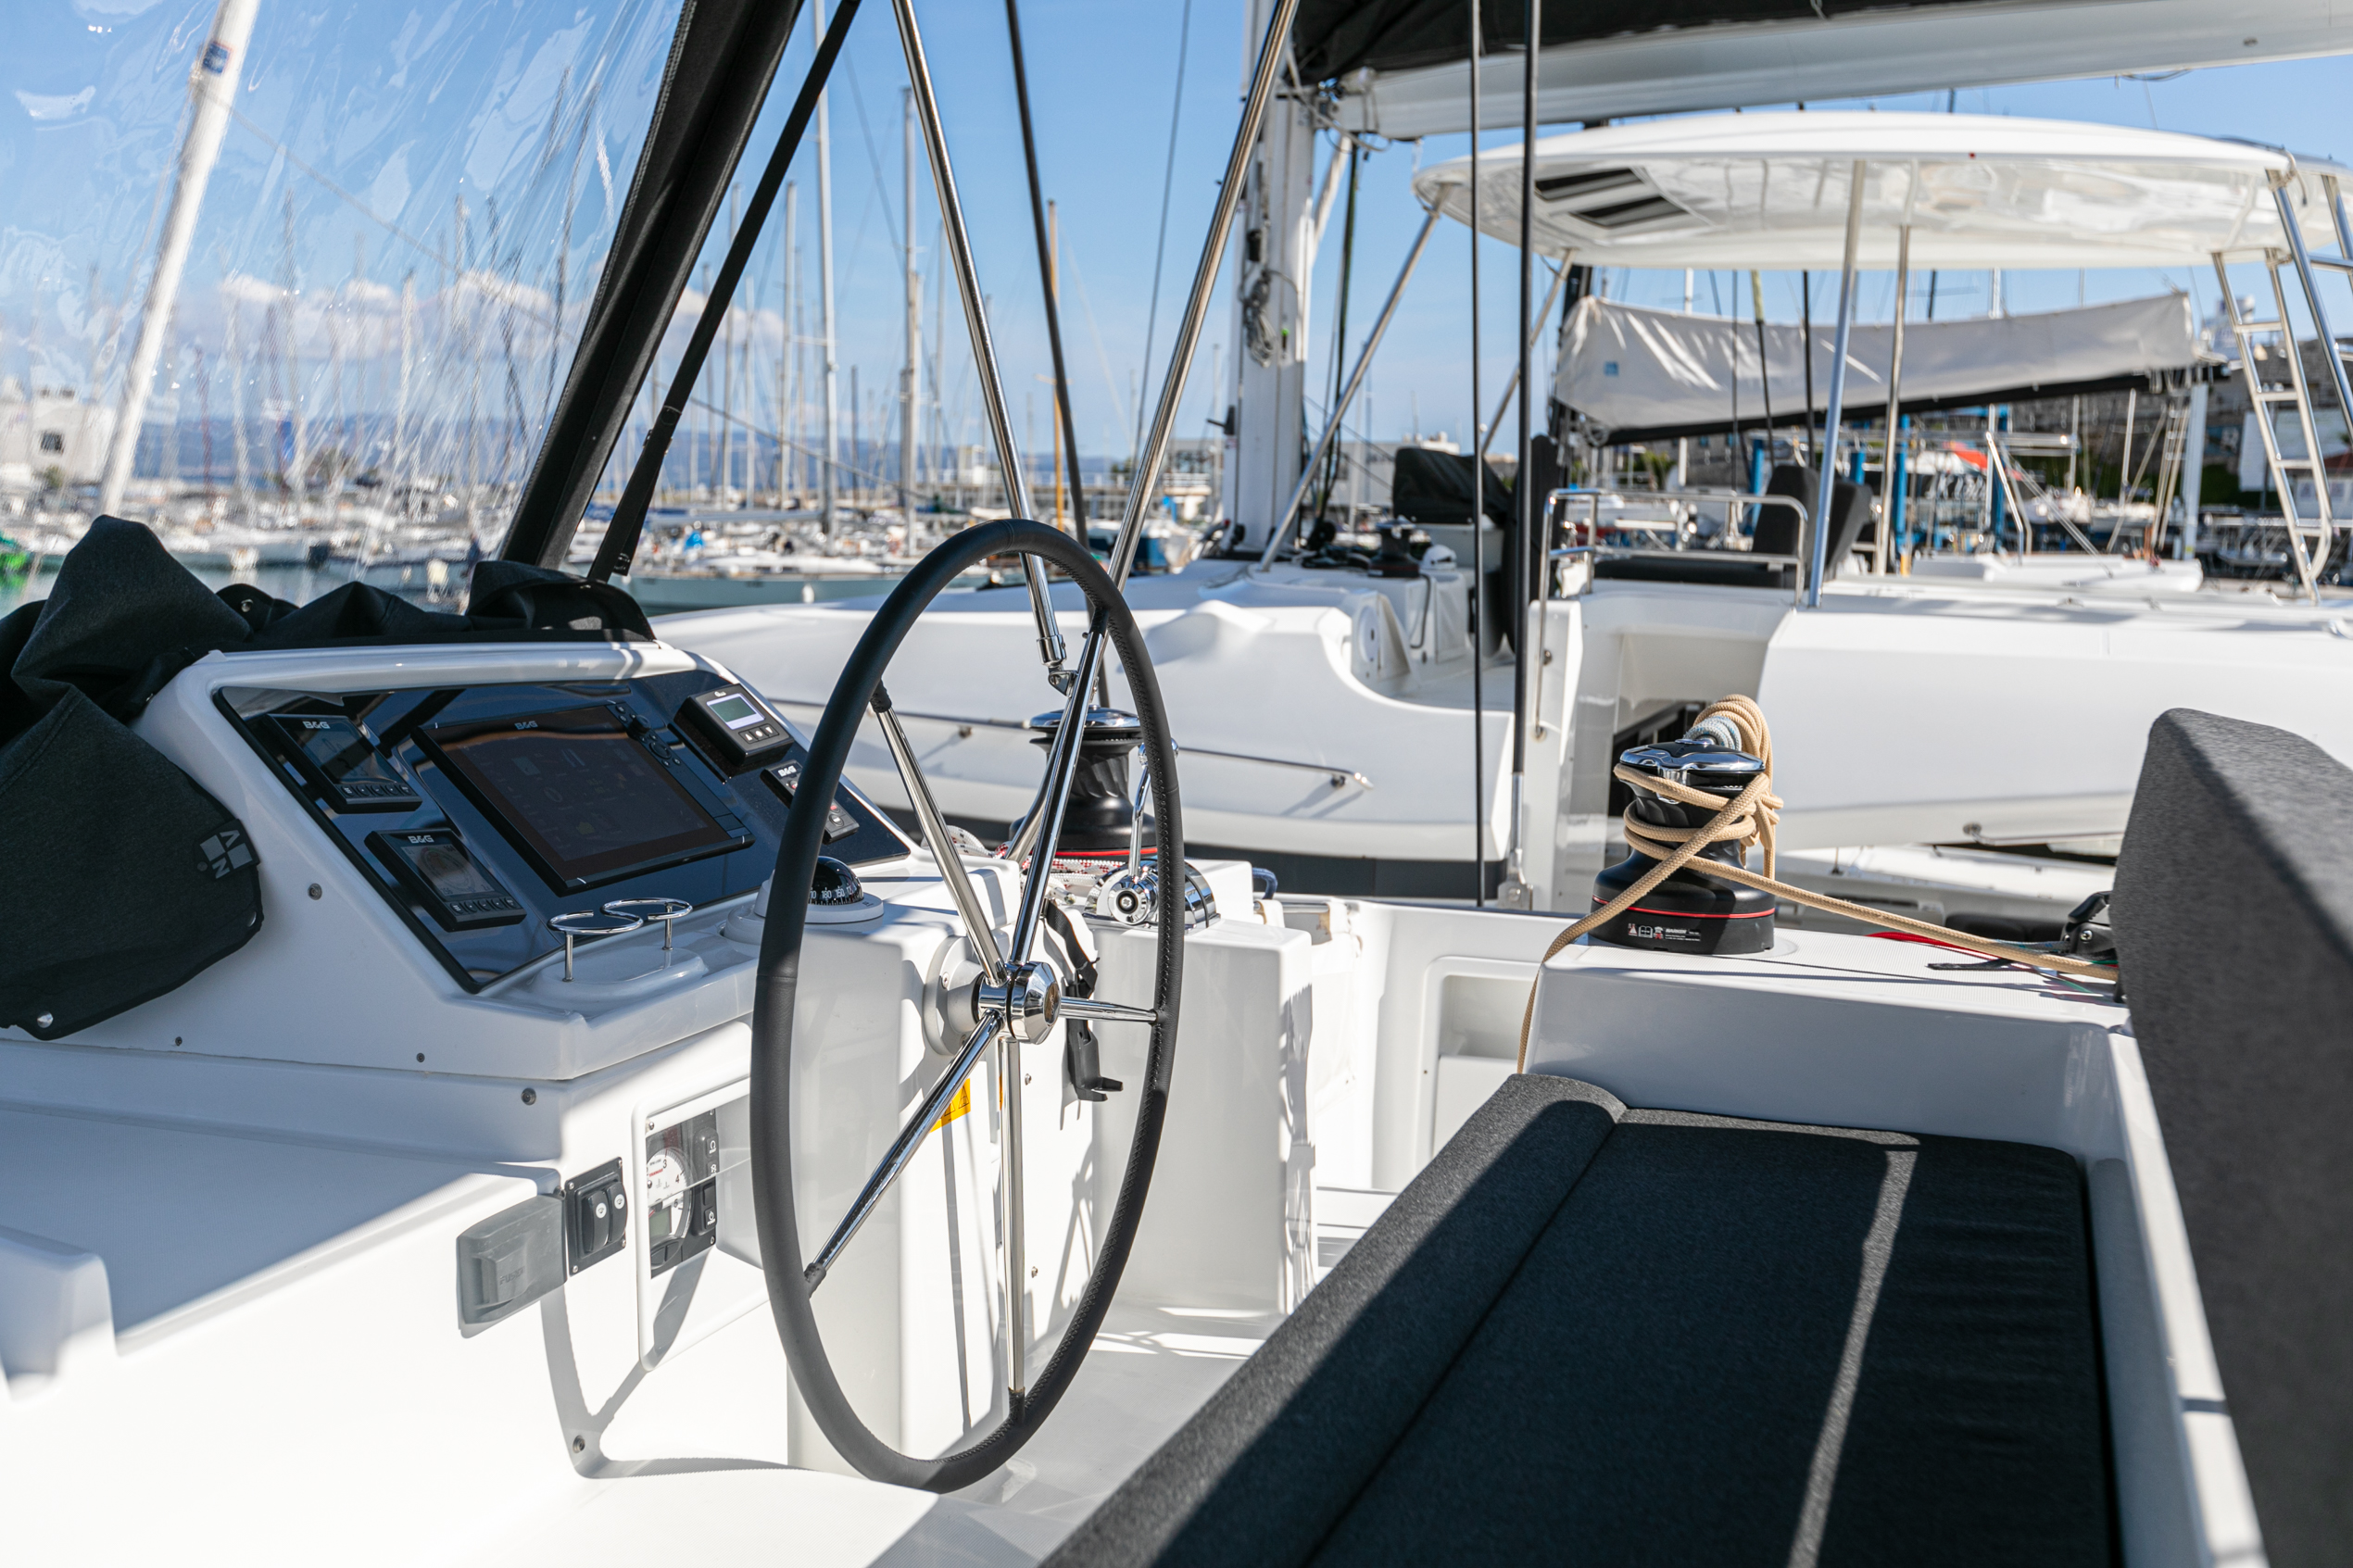 Lagoon 450 F (2019) equipped with generator, A/C ( (WIDE DREAM)  - 3